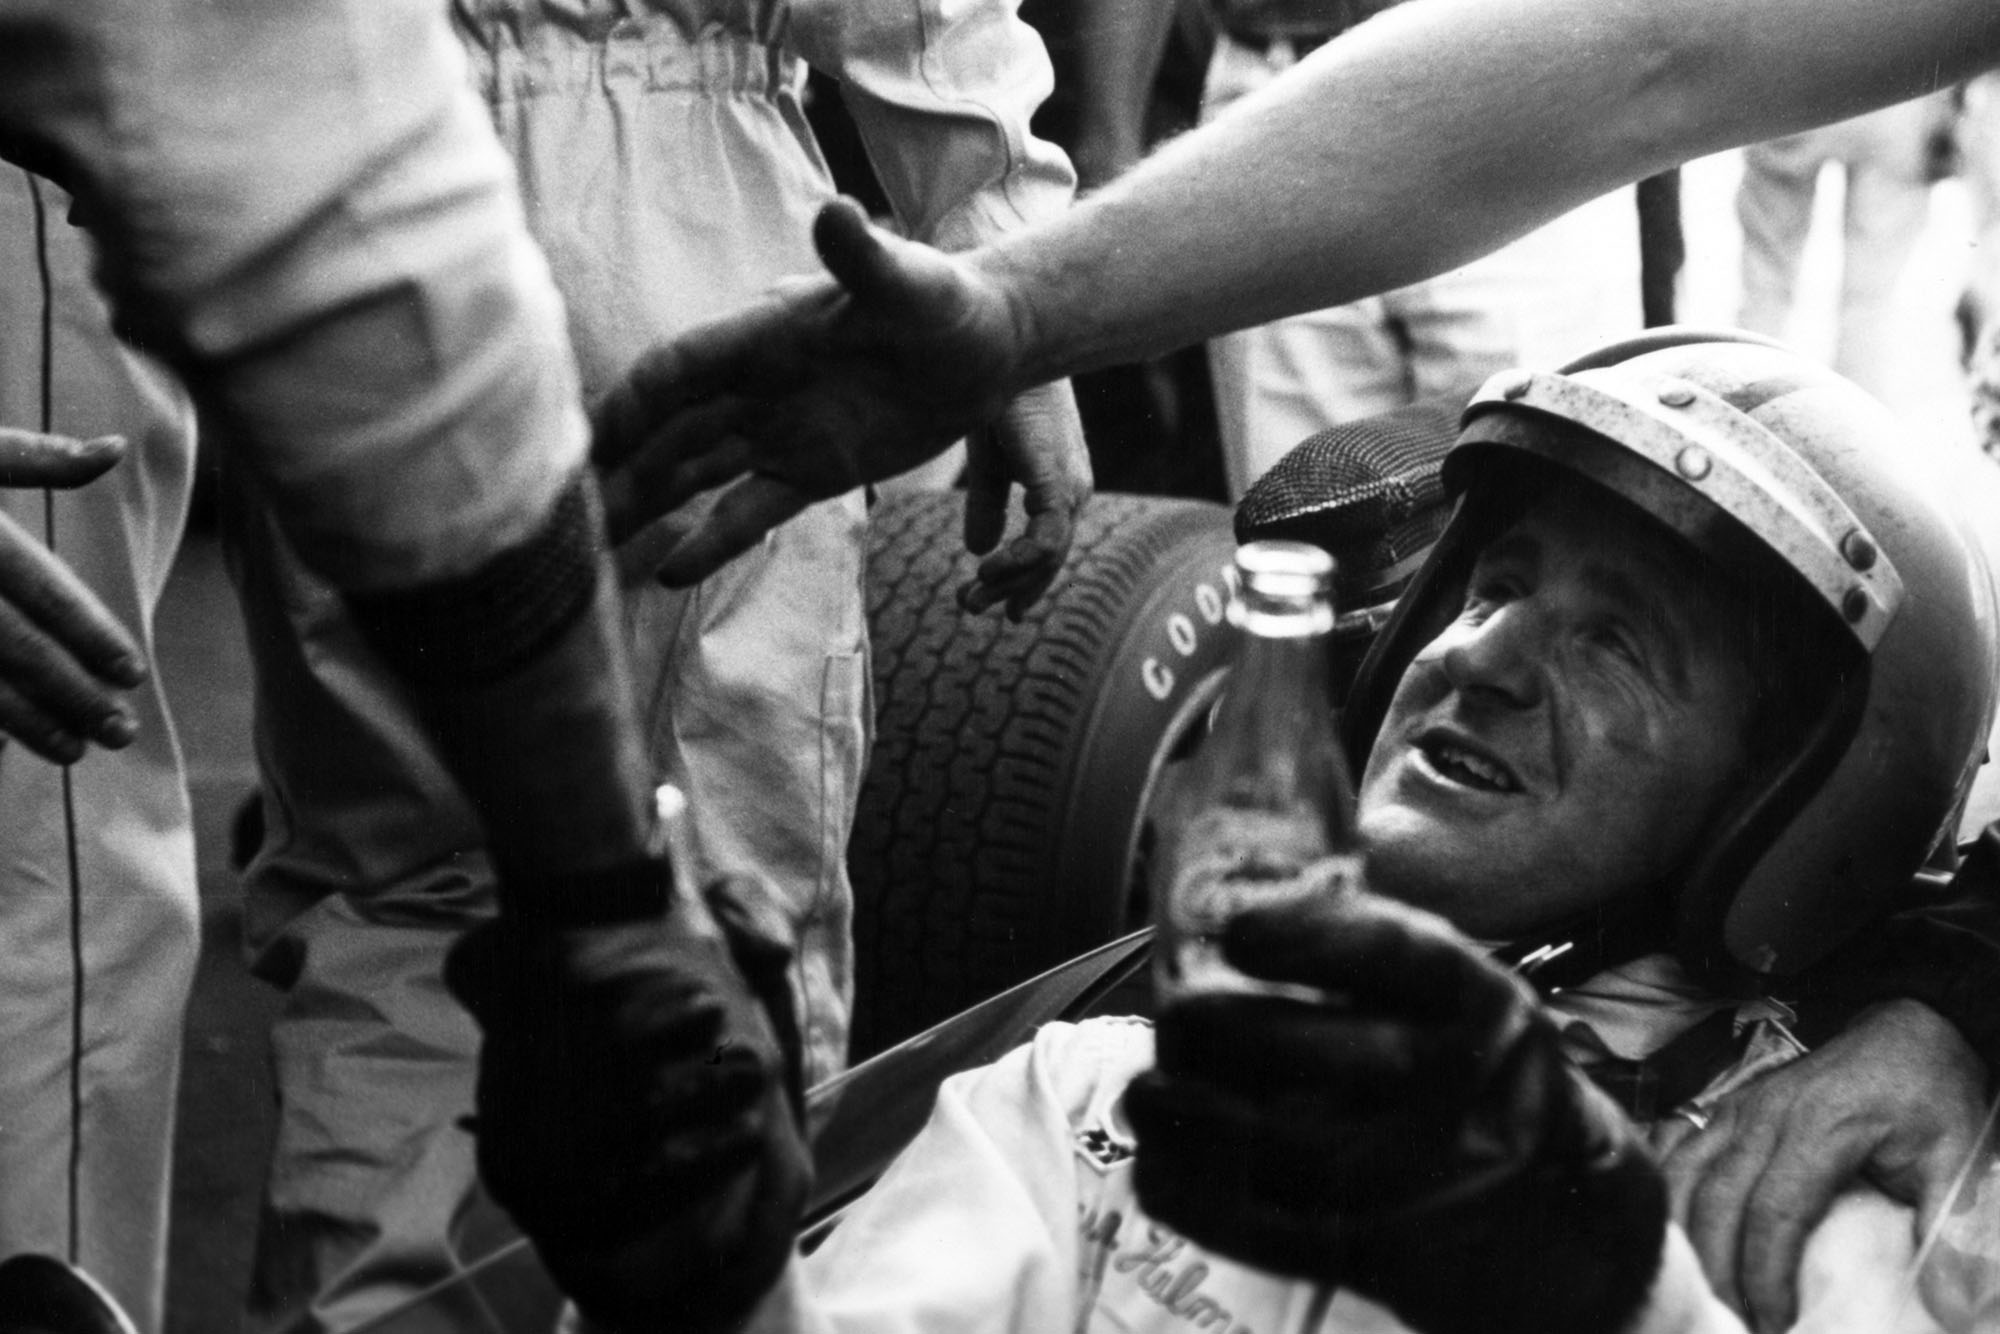 Denny Hulme, Brabham BT24-Repco, 3rd position, after clinching the world championship, portrait, helmet.